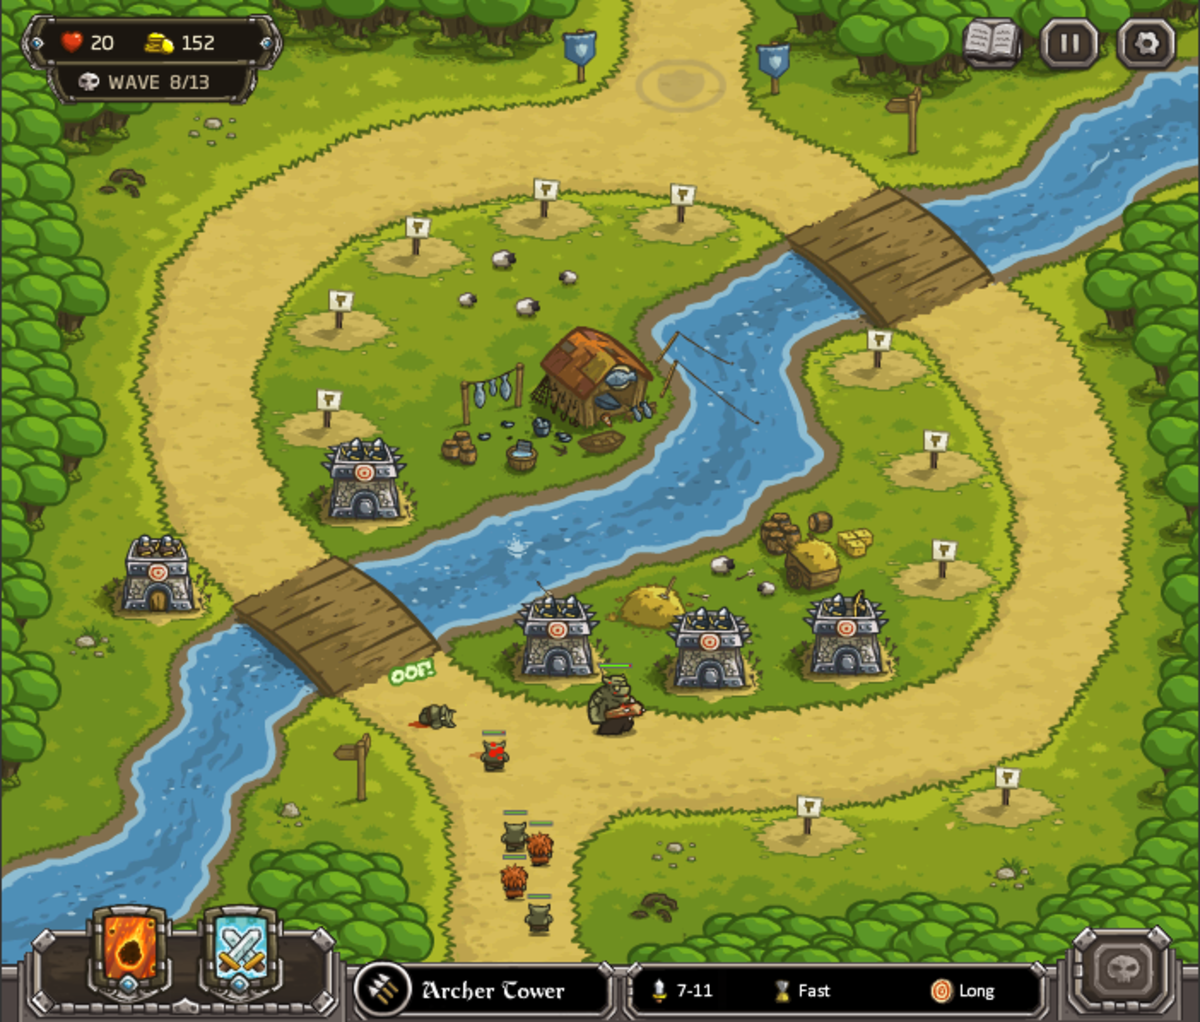 Kingdom Rush Walkthrough: Level 4 - Twin Rivers